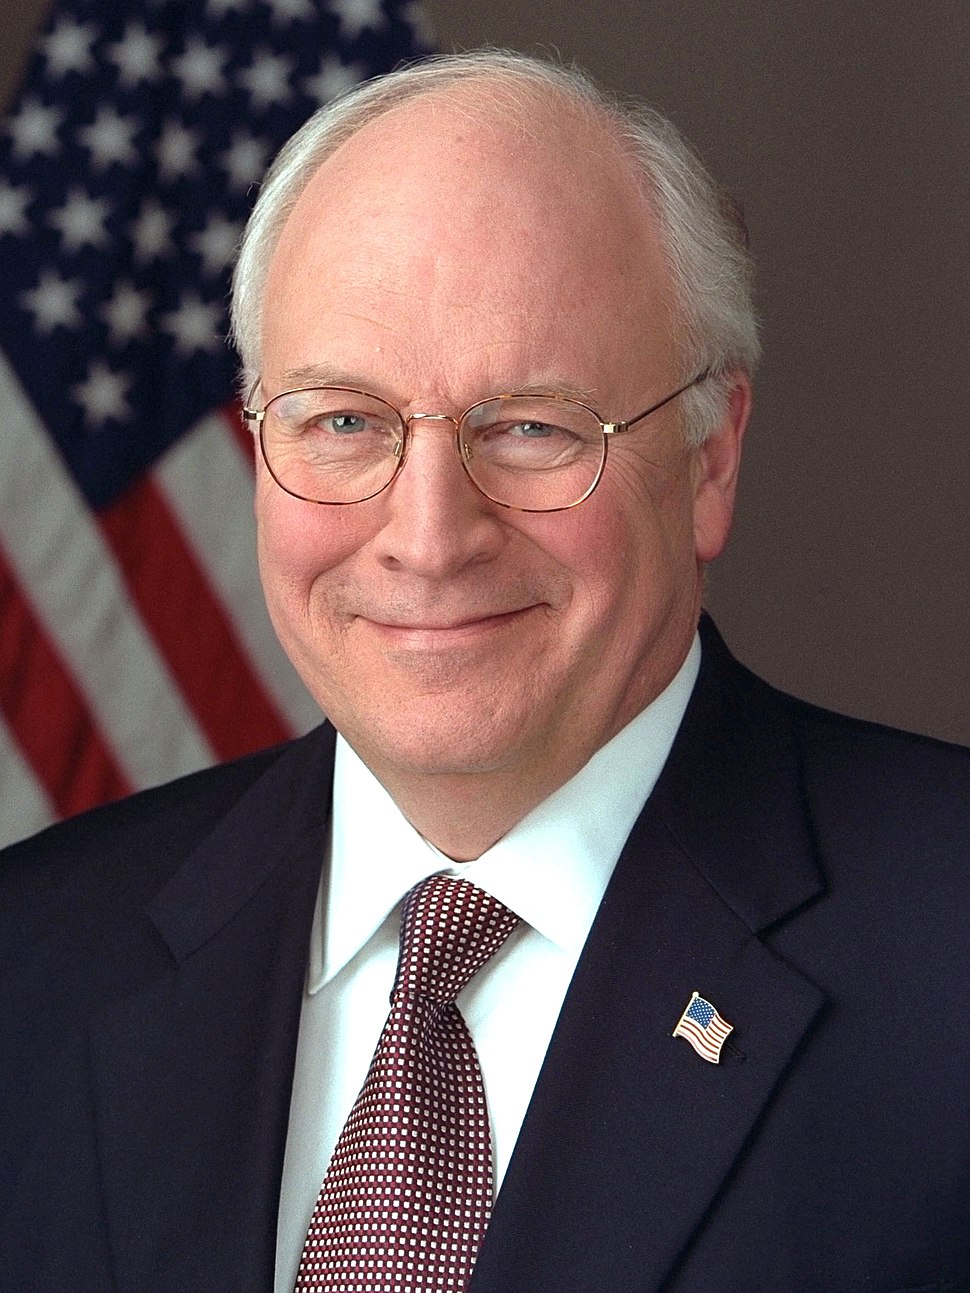 46 Dick Cheney 3x4